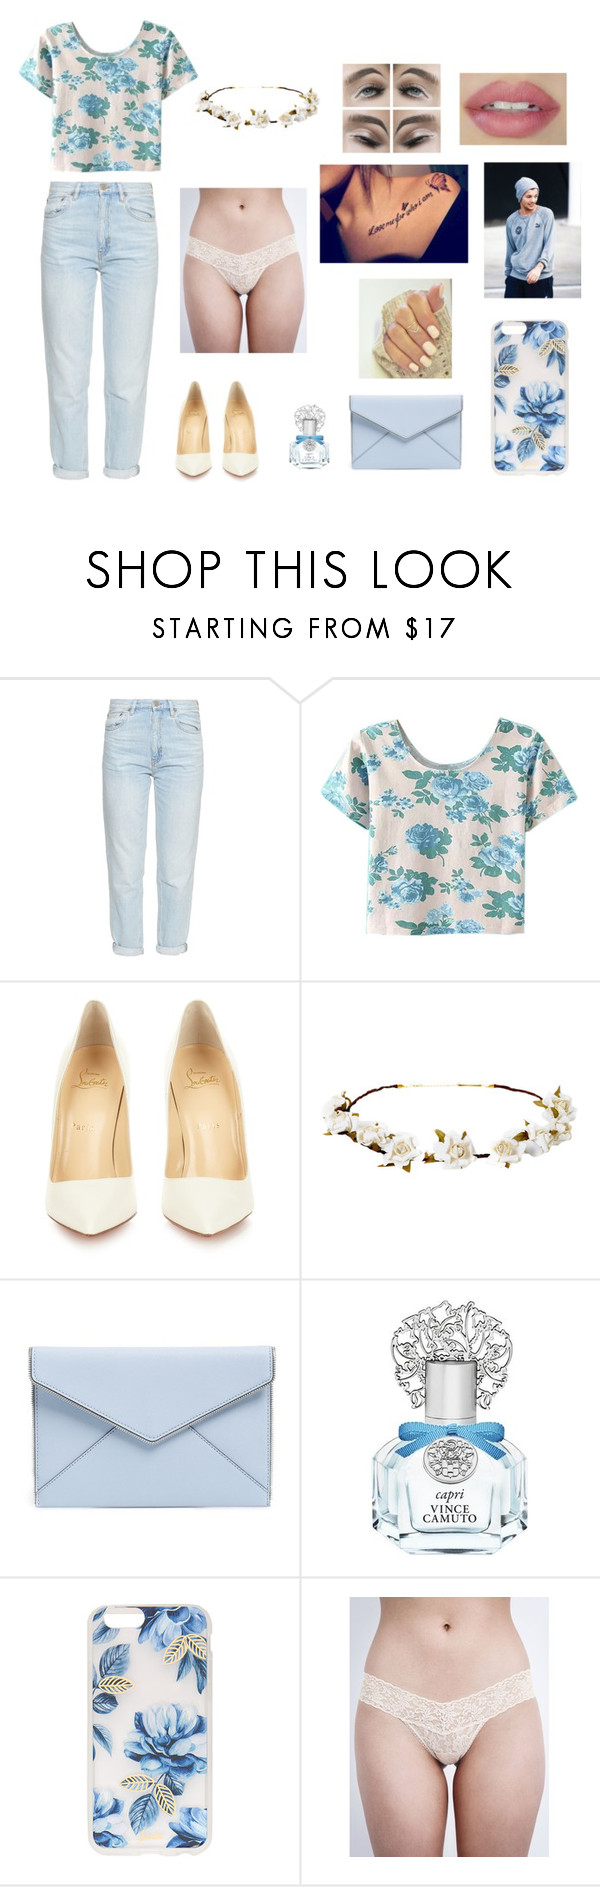 """""""Louis Tomlinson the cross dresser Pt. 11"""" by crazy-for-1d-5sos ❤ liked on Polyvore featuring M.i.h Jeans, WithChic, Christian Louboutin, Cult Gaia, Rebecca Minkoff, Vince Camuto, Sonix and Hanky Panky"""